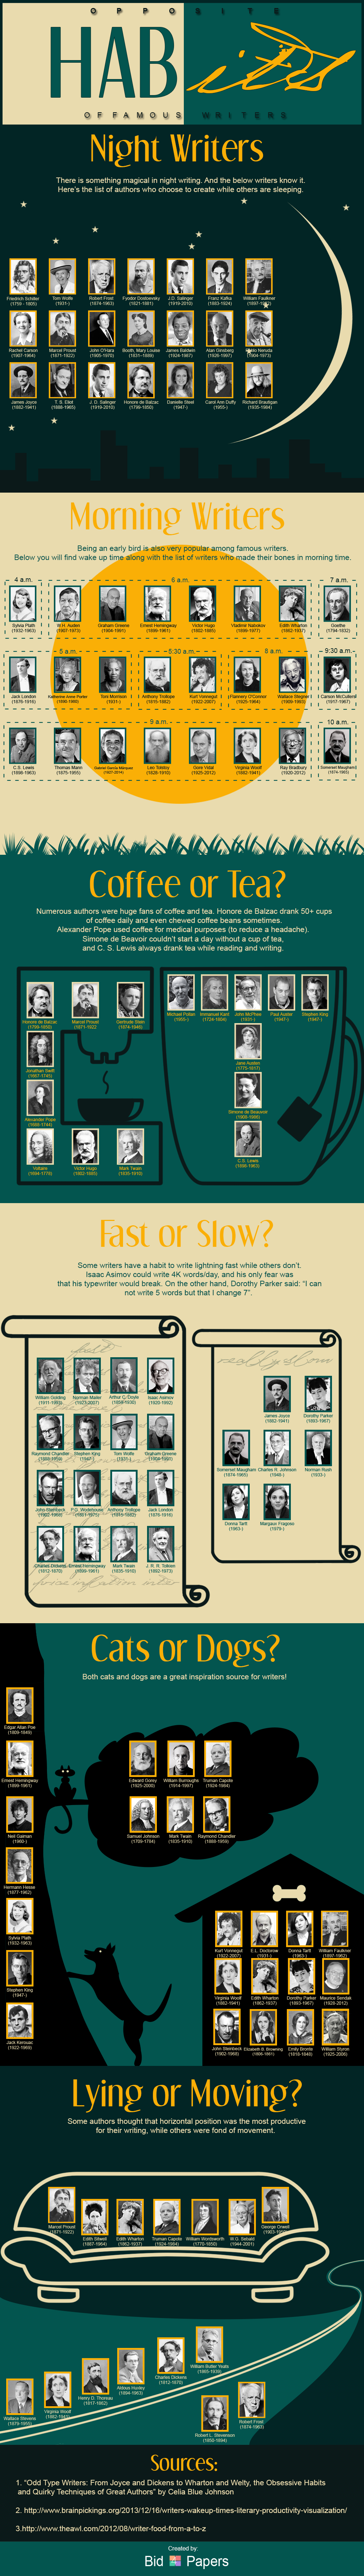 The Habits Of Famous Writers